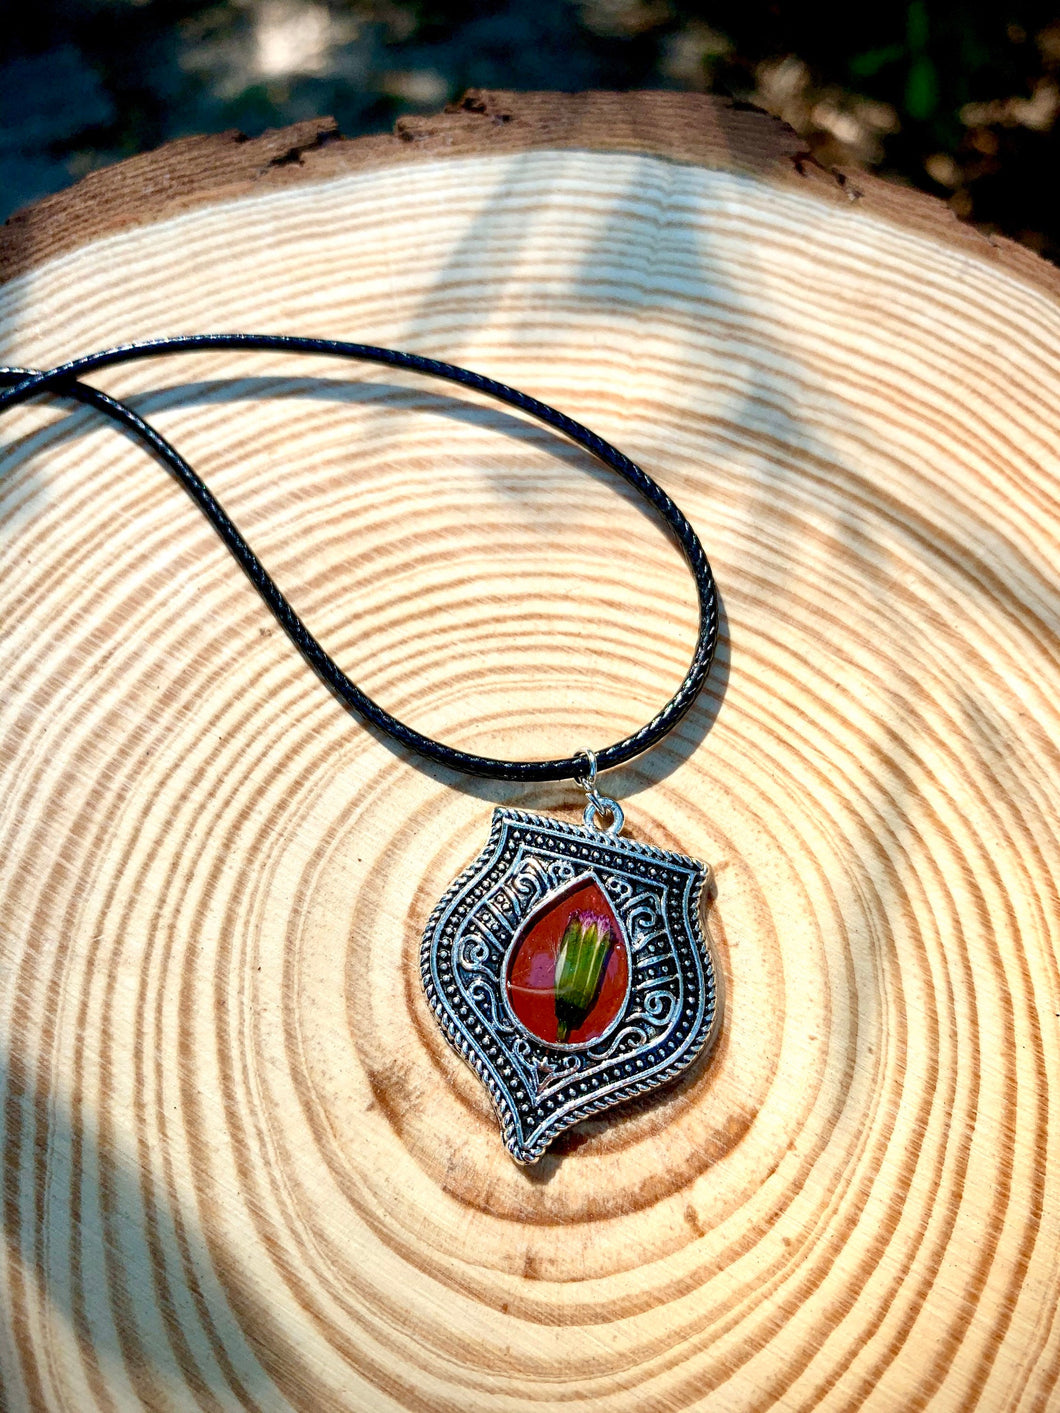 Silver and red pendant with pressed flower